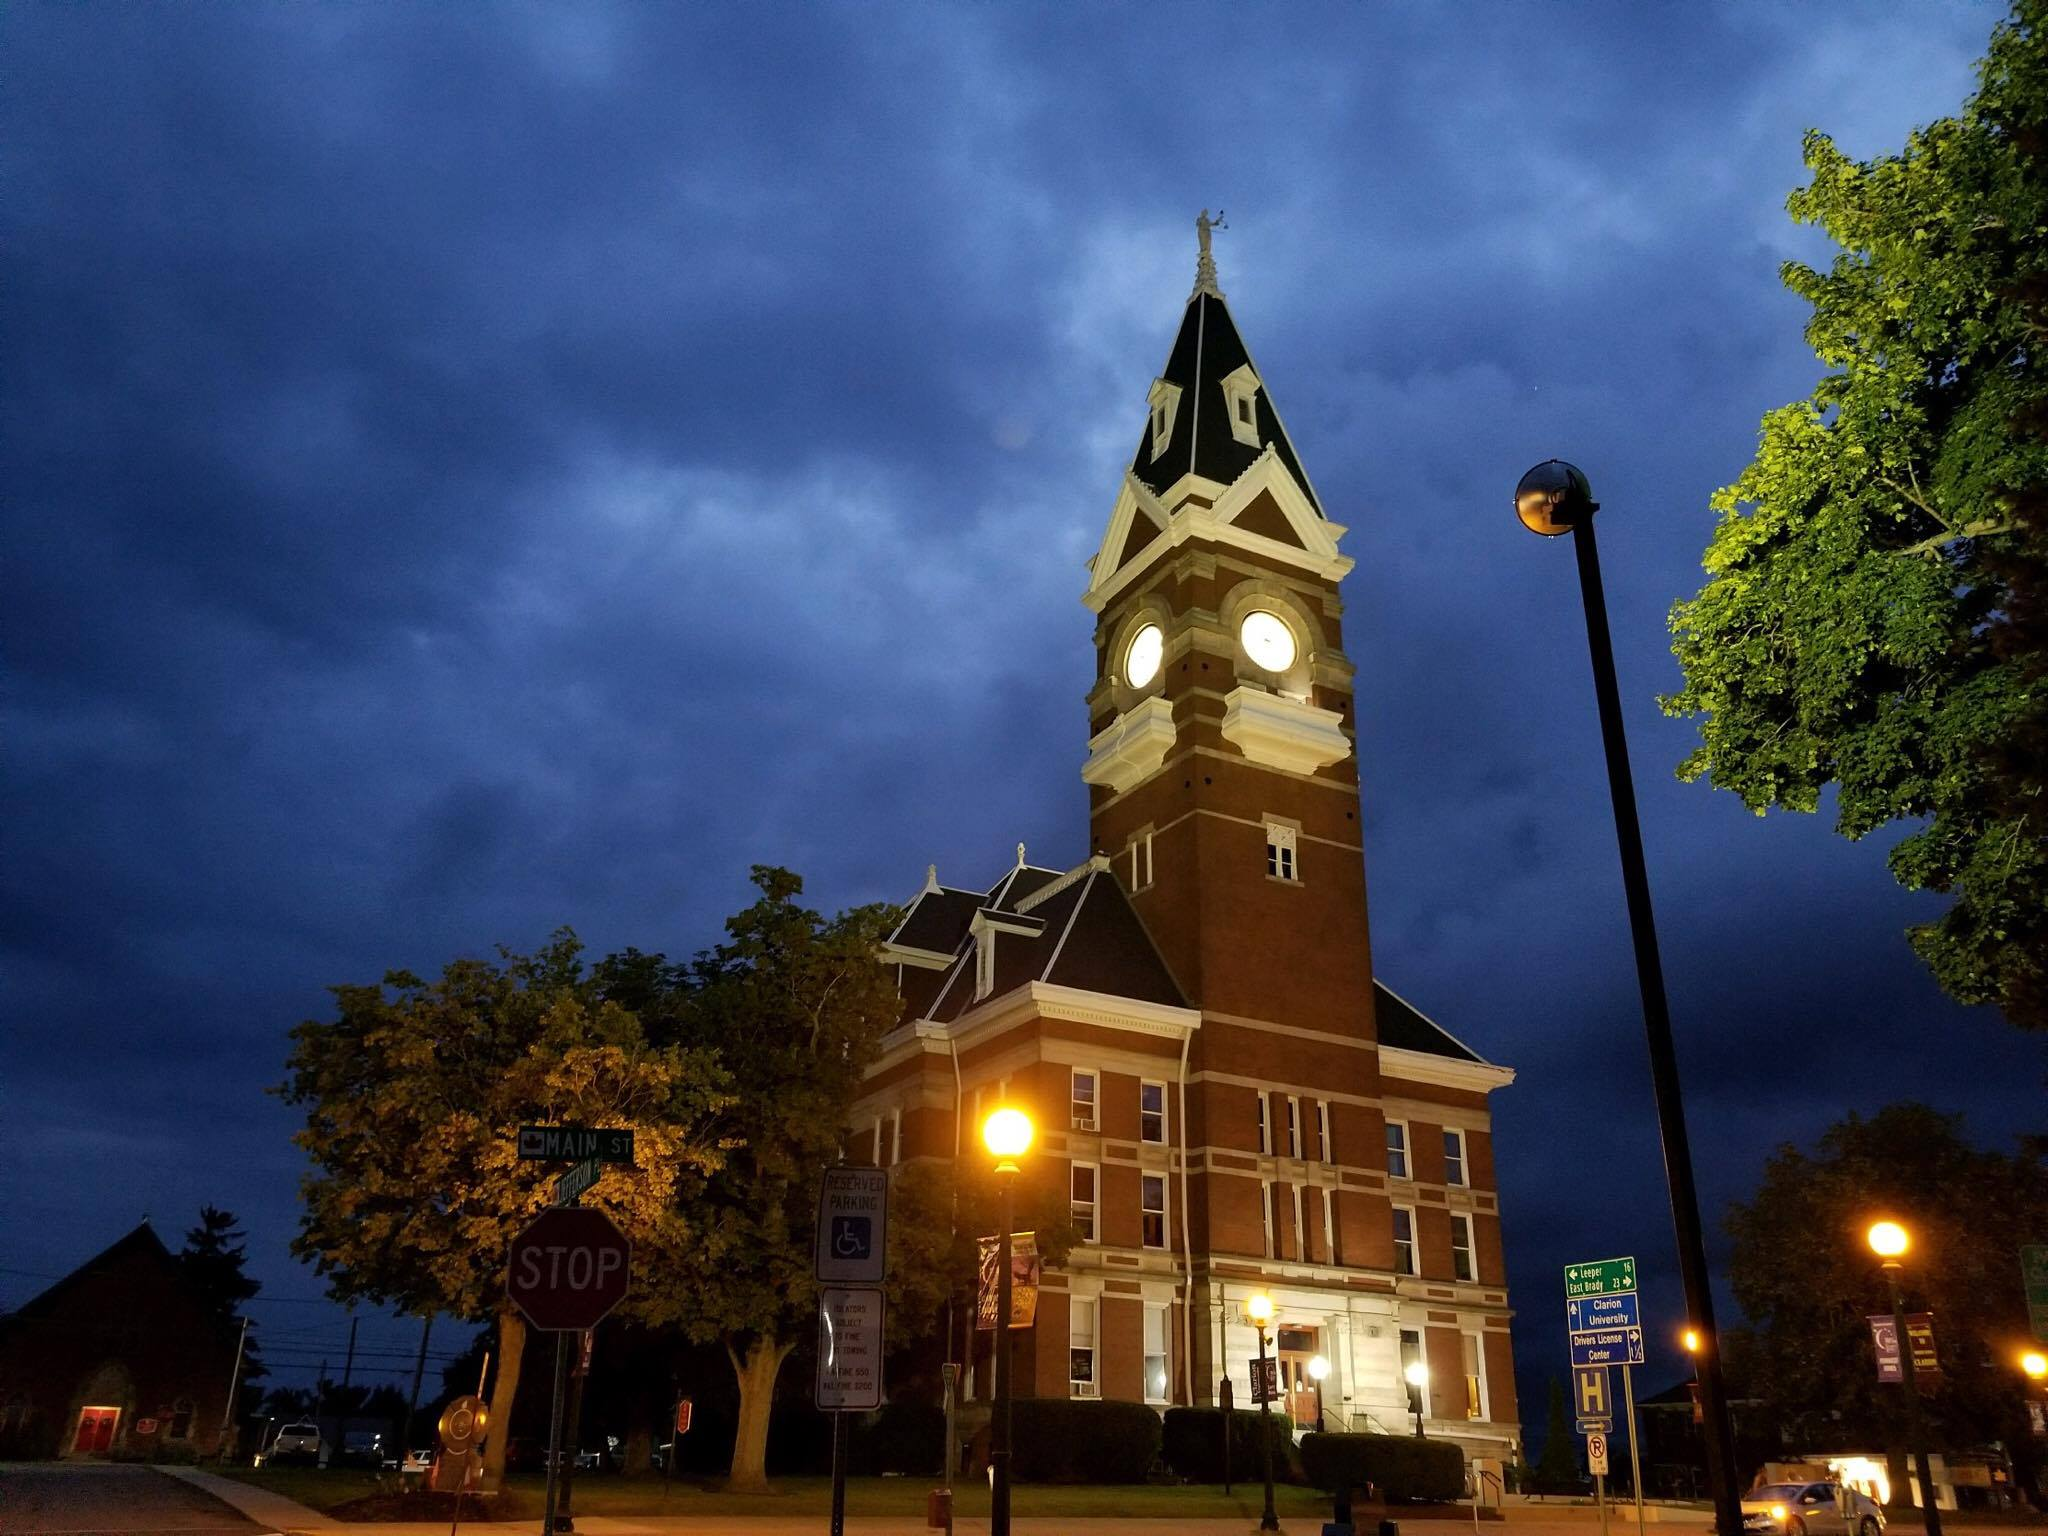 Dark sky over Clarion's courthouse Monday evening. Photo submitted by Ben Rumbarger.